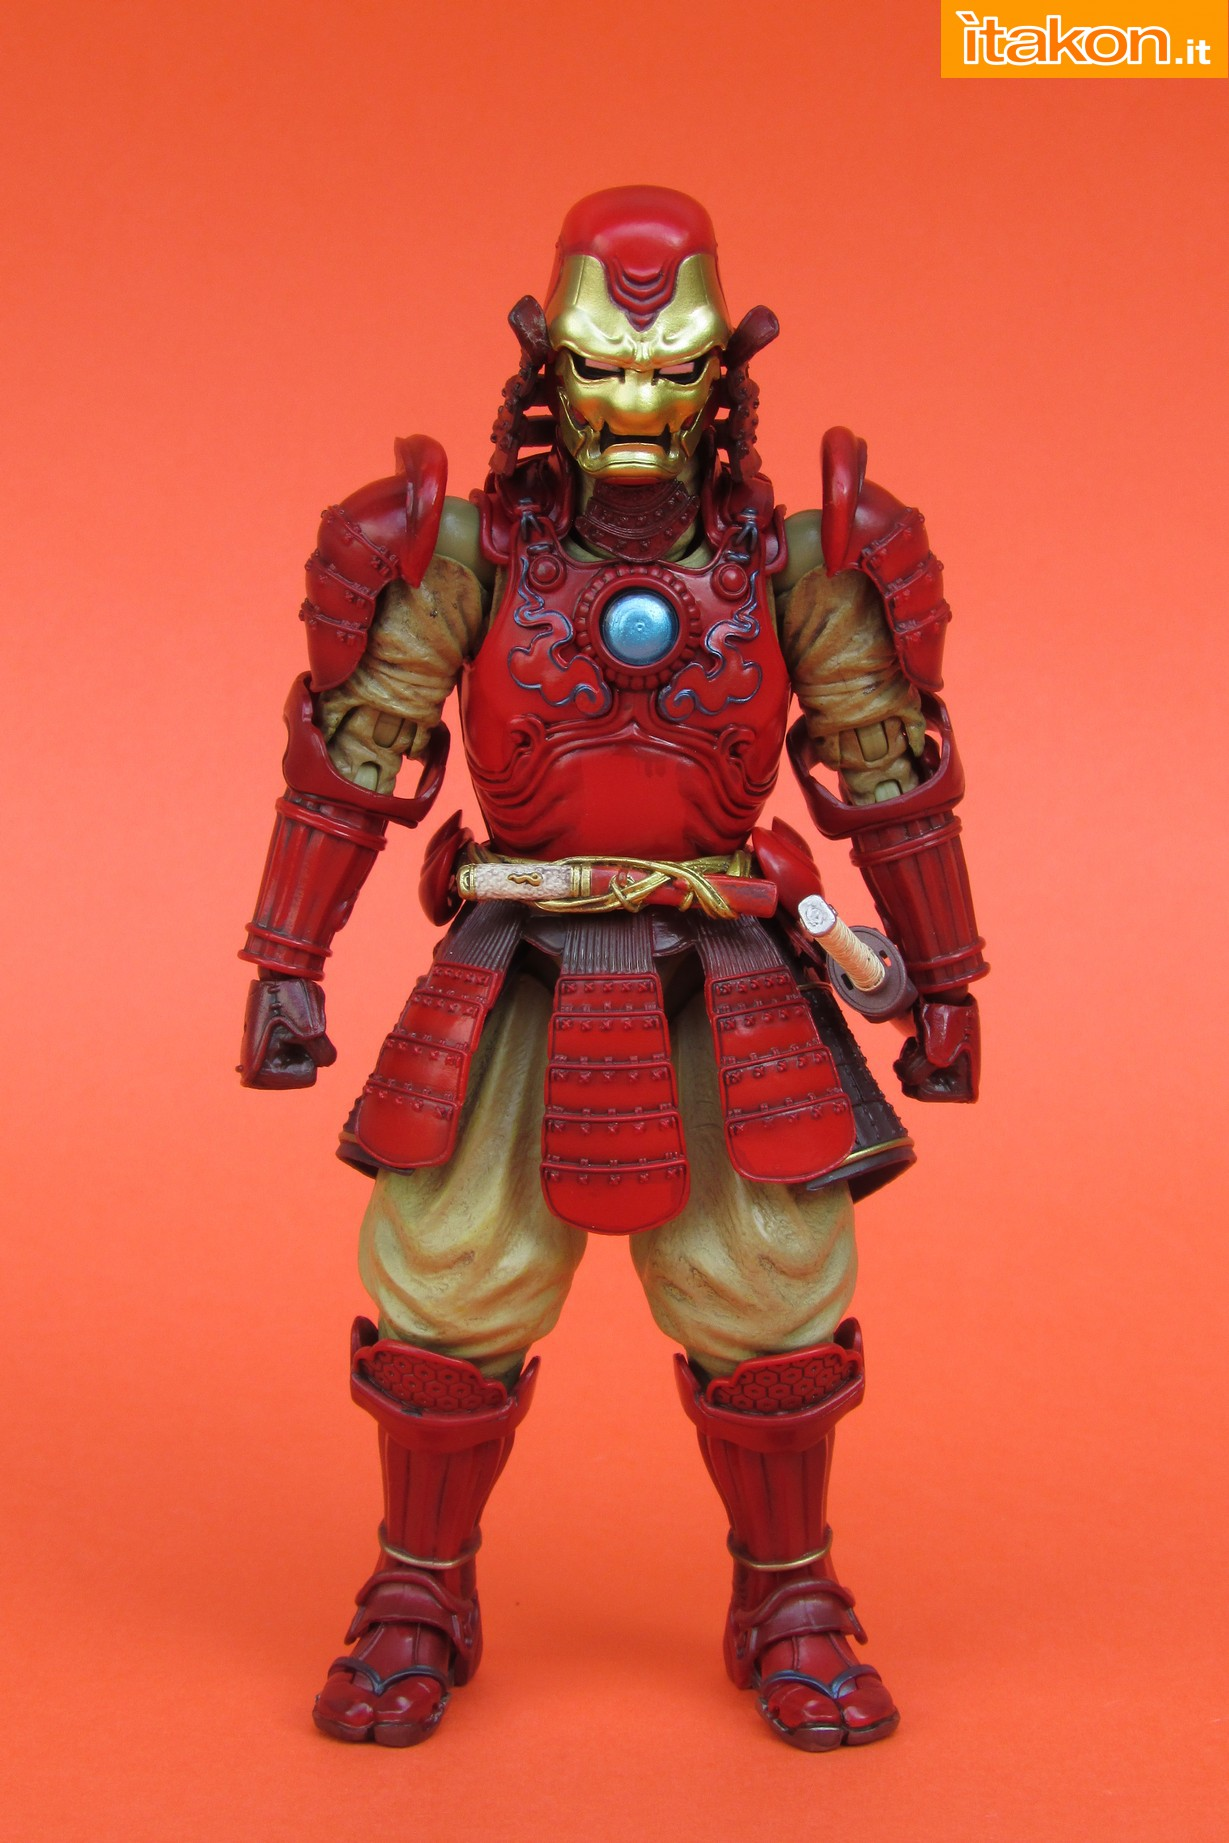 Link a Marvel Comics Koutetsu Samurai Iron Man Mark 3 Meishou MANGA REALIZATION review Bandai Itakon.it11